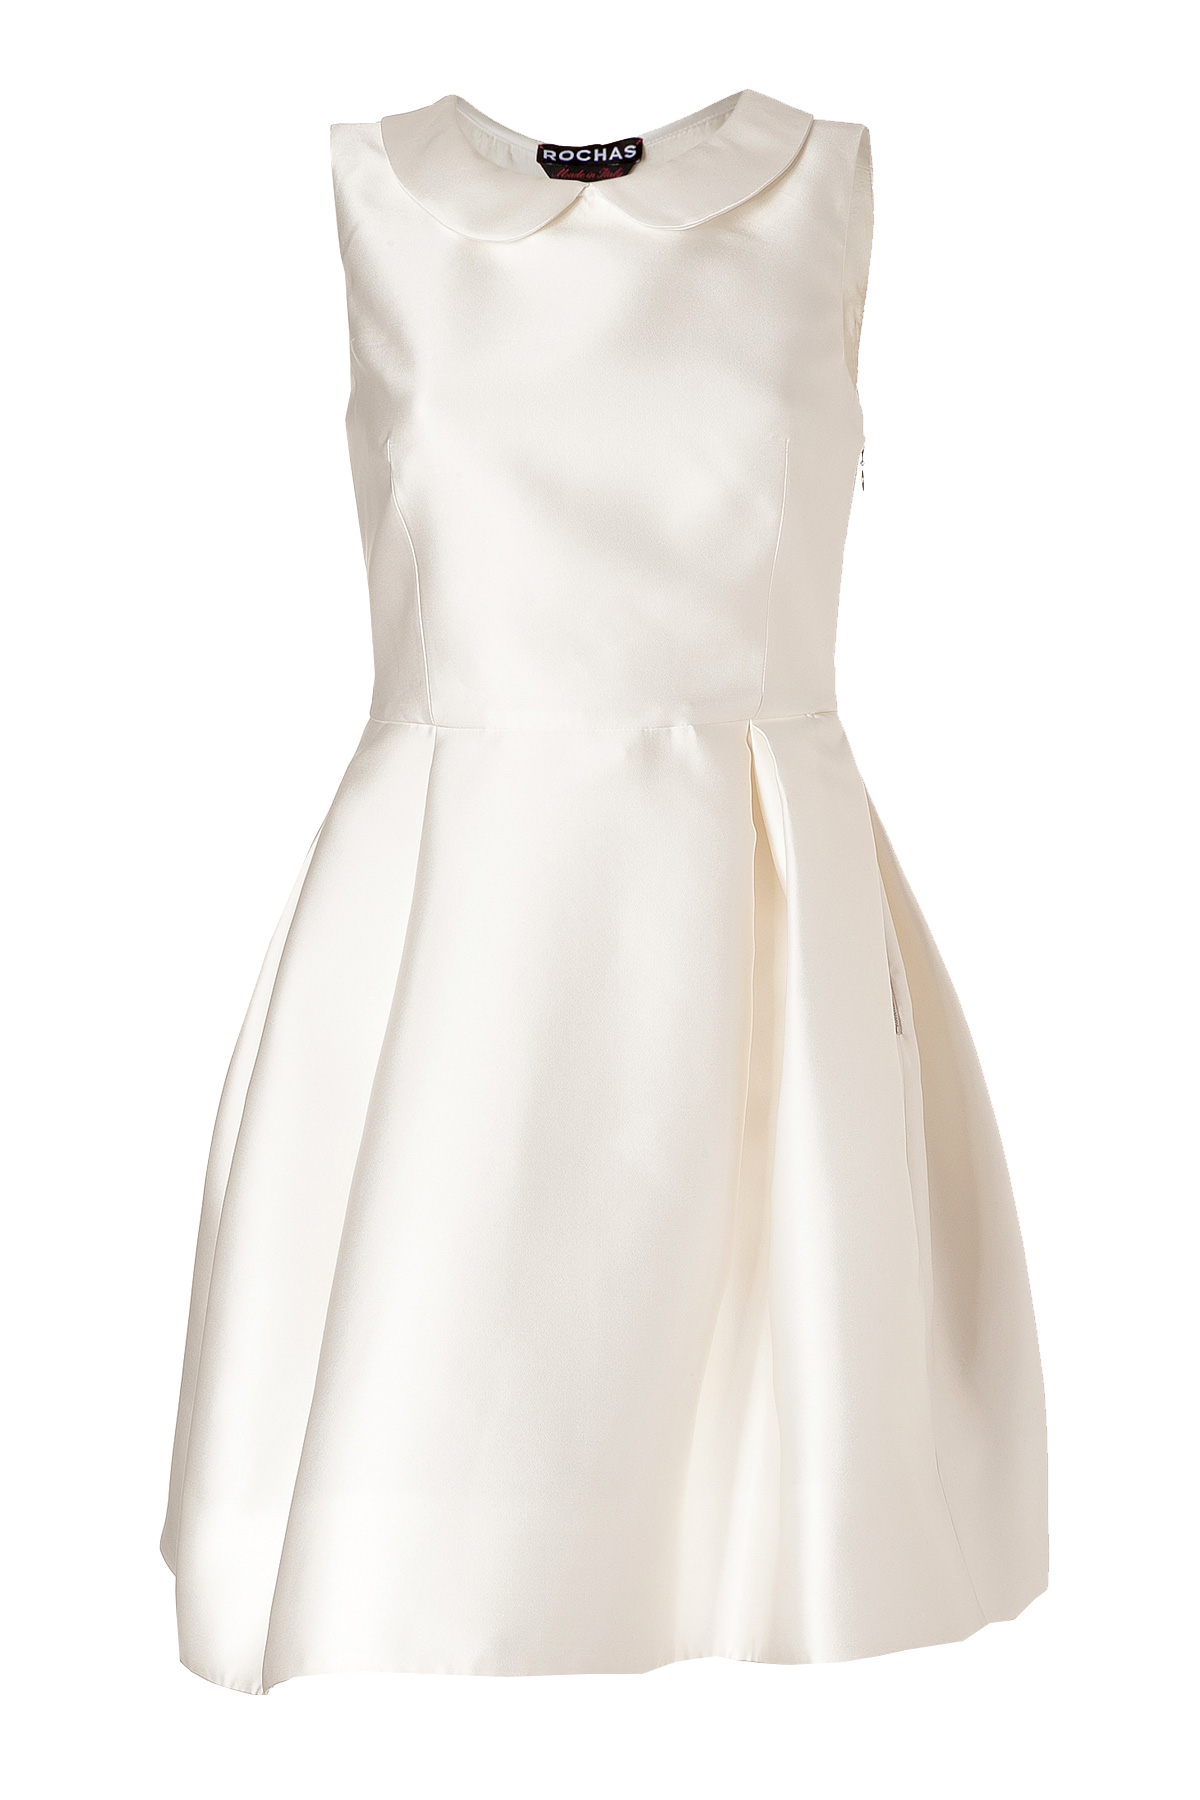 Rochas Ivory Round Collar Satin Dress